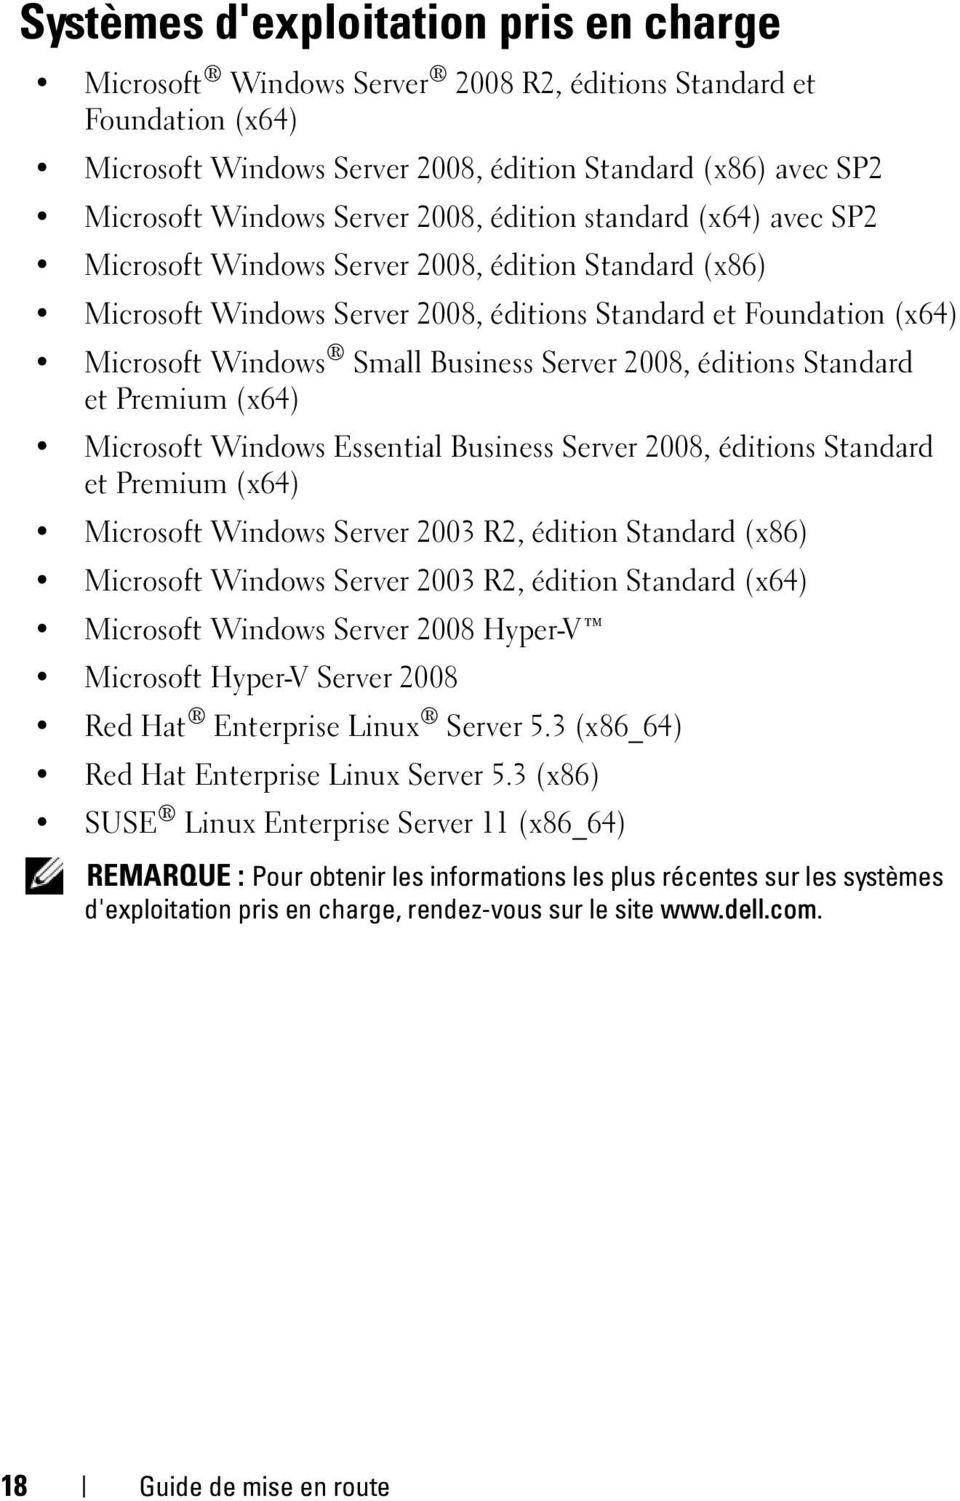 Server 2008, éditions Standard et Premium (x64) Microsoft Windows Essential Business Server 2008, éditions Standard et Premium (x64) Microsoft Windows Server 2003 R2, édition Standard (x86) Microsoft